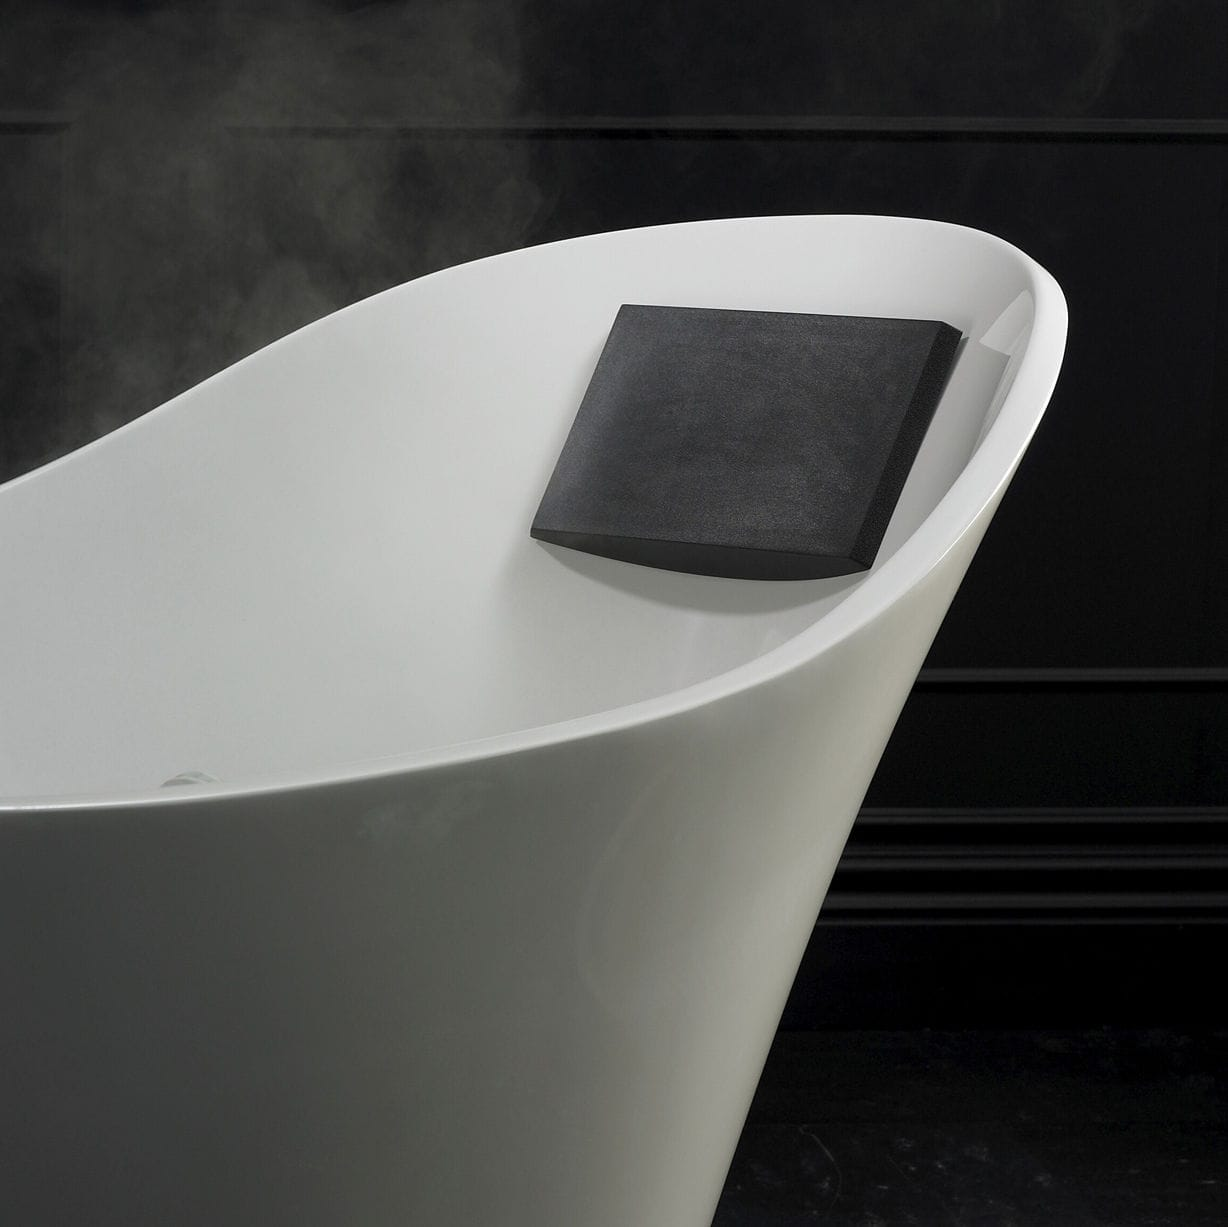 Bathtub backrest headrest - Bathtub Headrest Amalfi